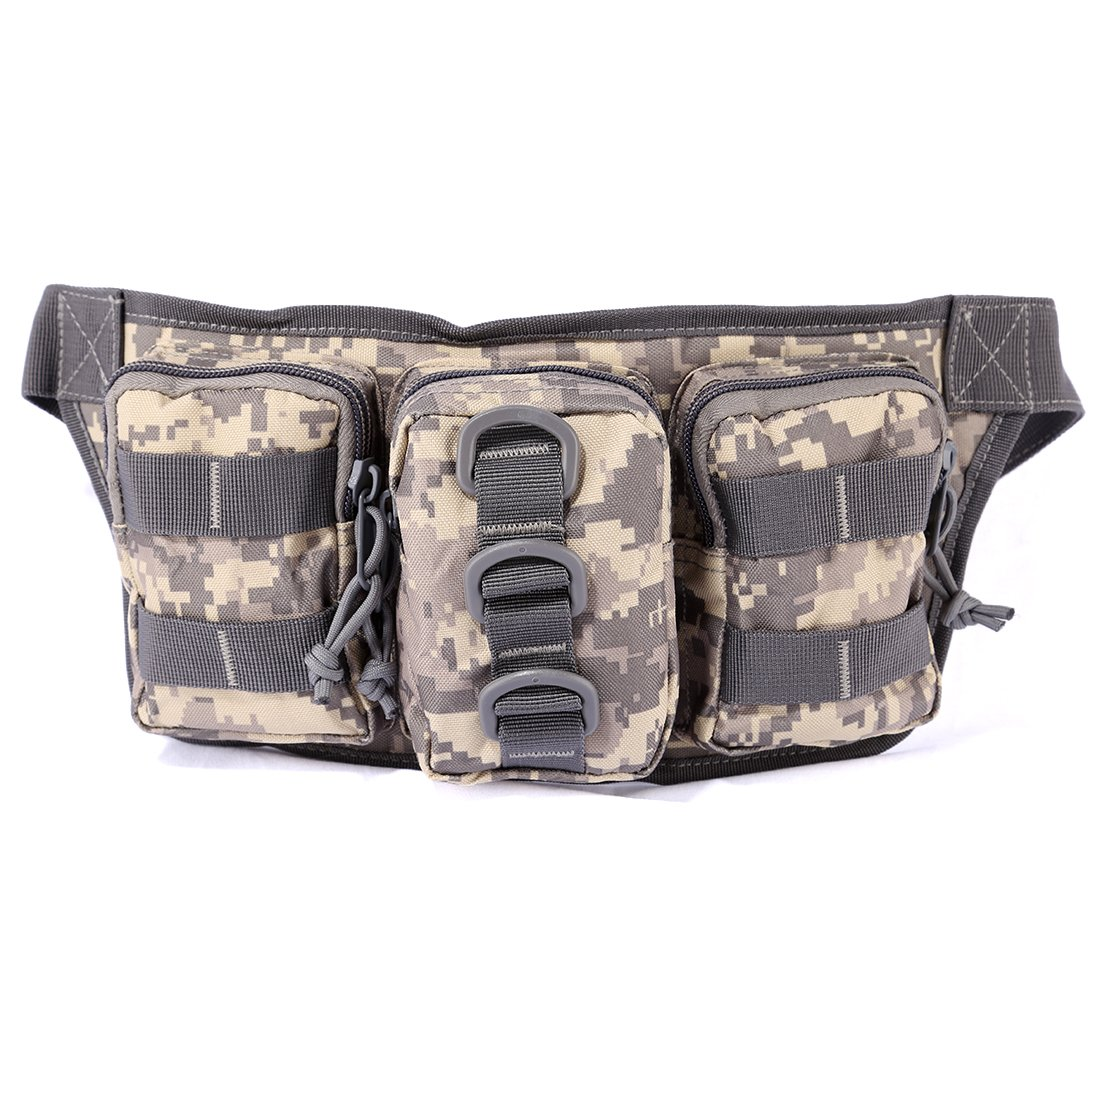 CS bags, Lommer 13.78x1.97x6.3In Small-sized Outdoor Waterproof Tactical Three-pouch Waist Bag for Nerf CS